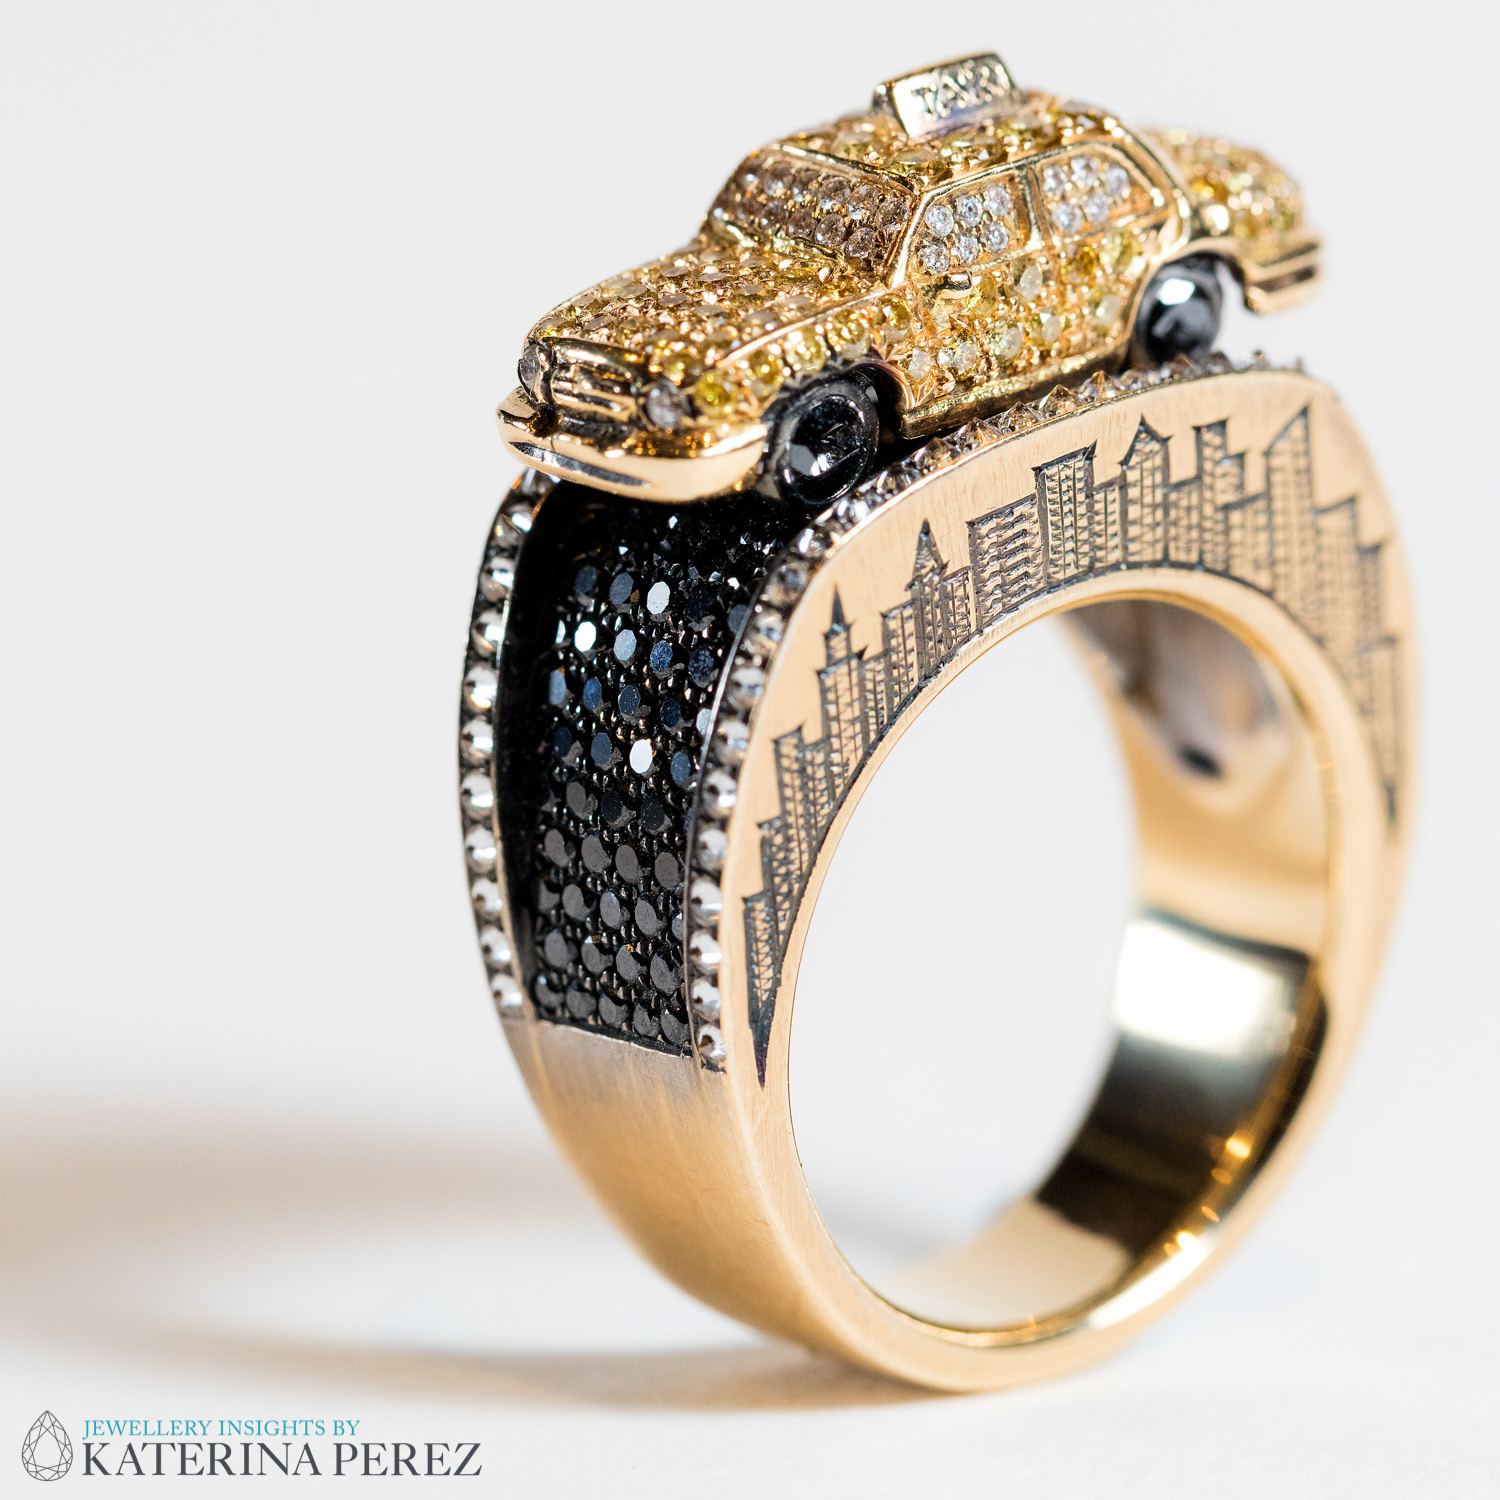 Wendy Brandes New York Taxi ring from the Maneater collection